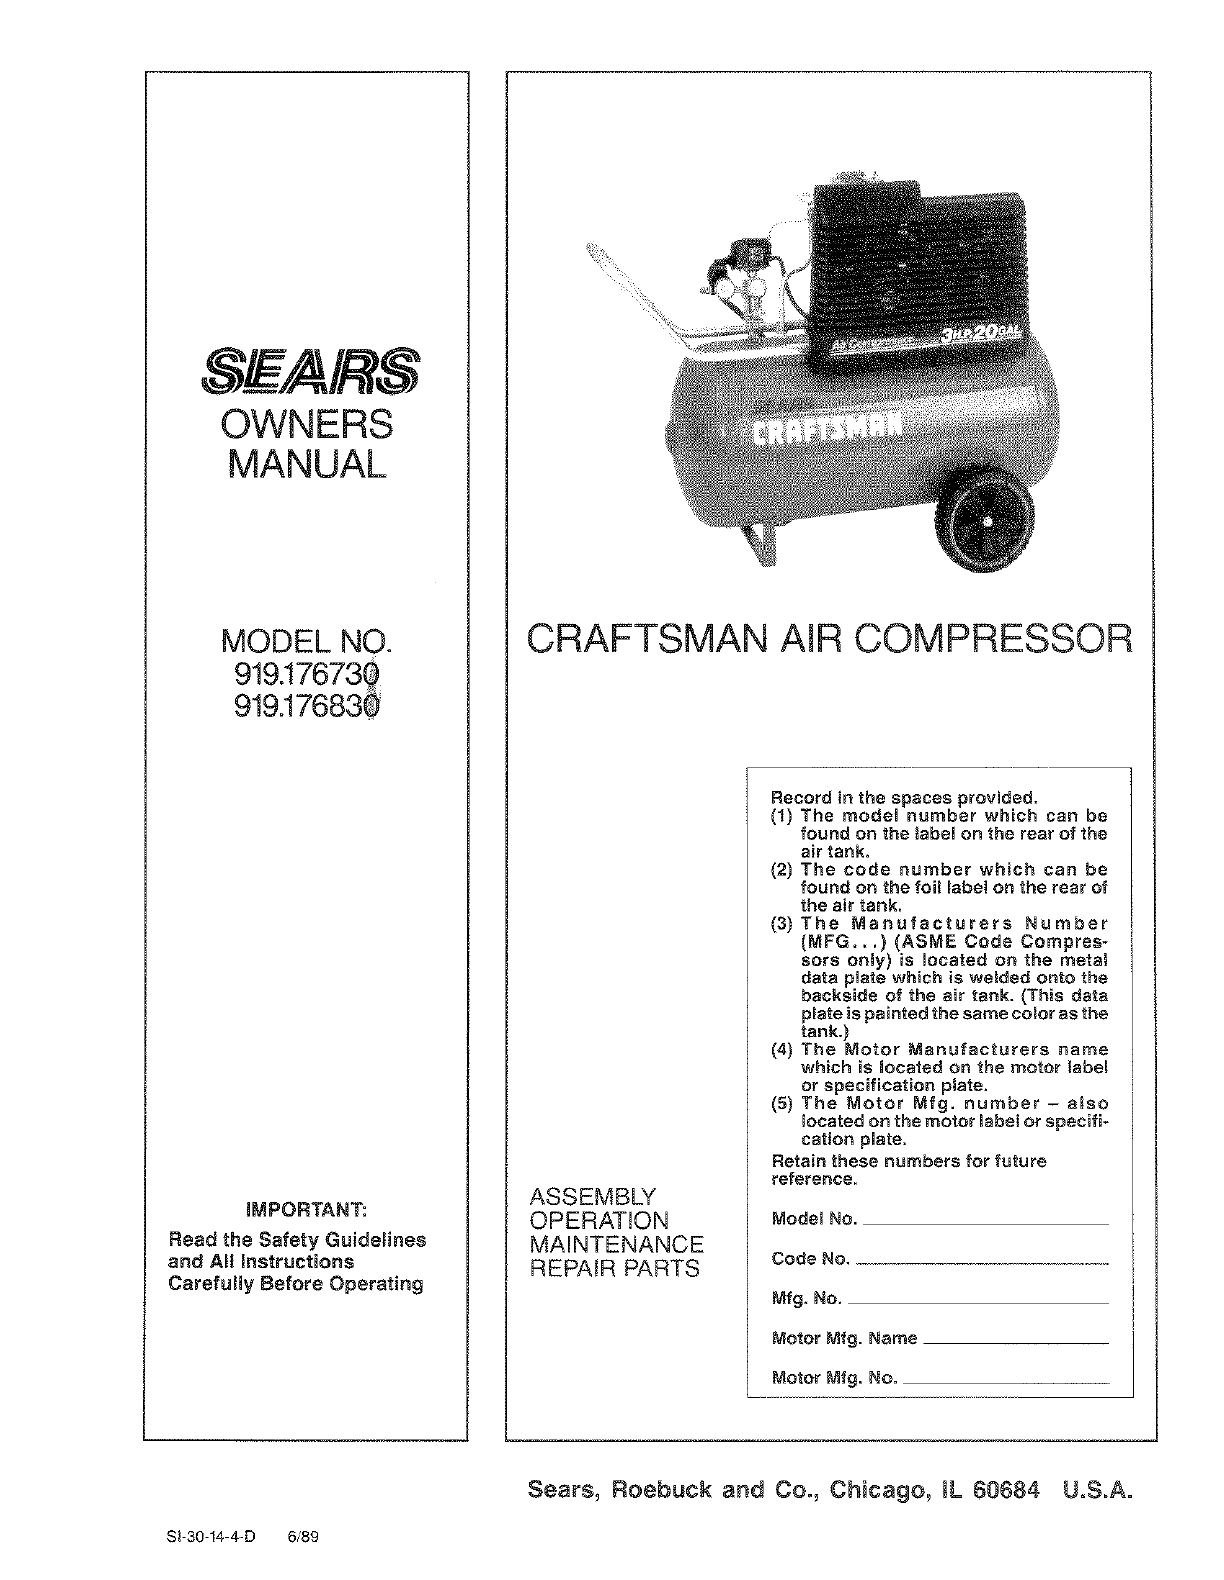 Craftsman Air Compressor 919176730 User Guide ManualsOnlinecom